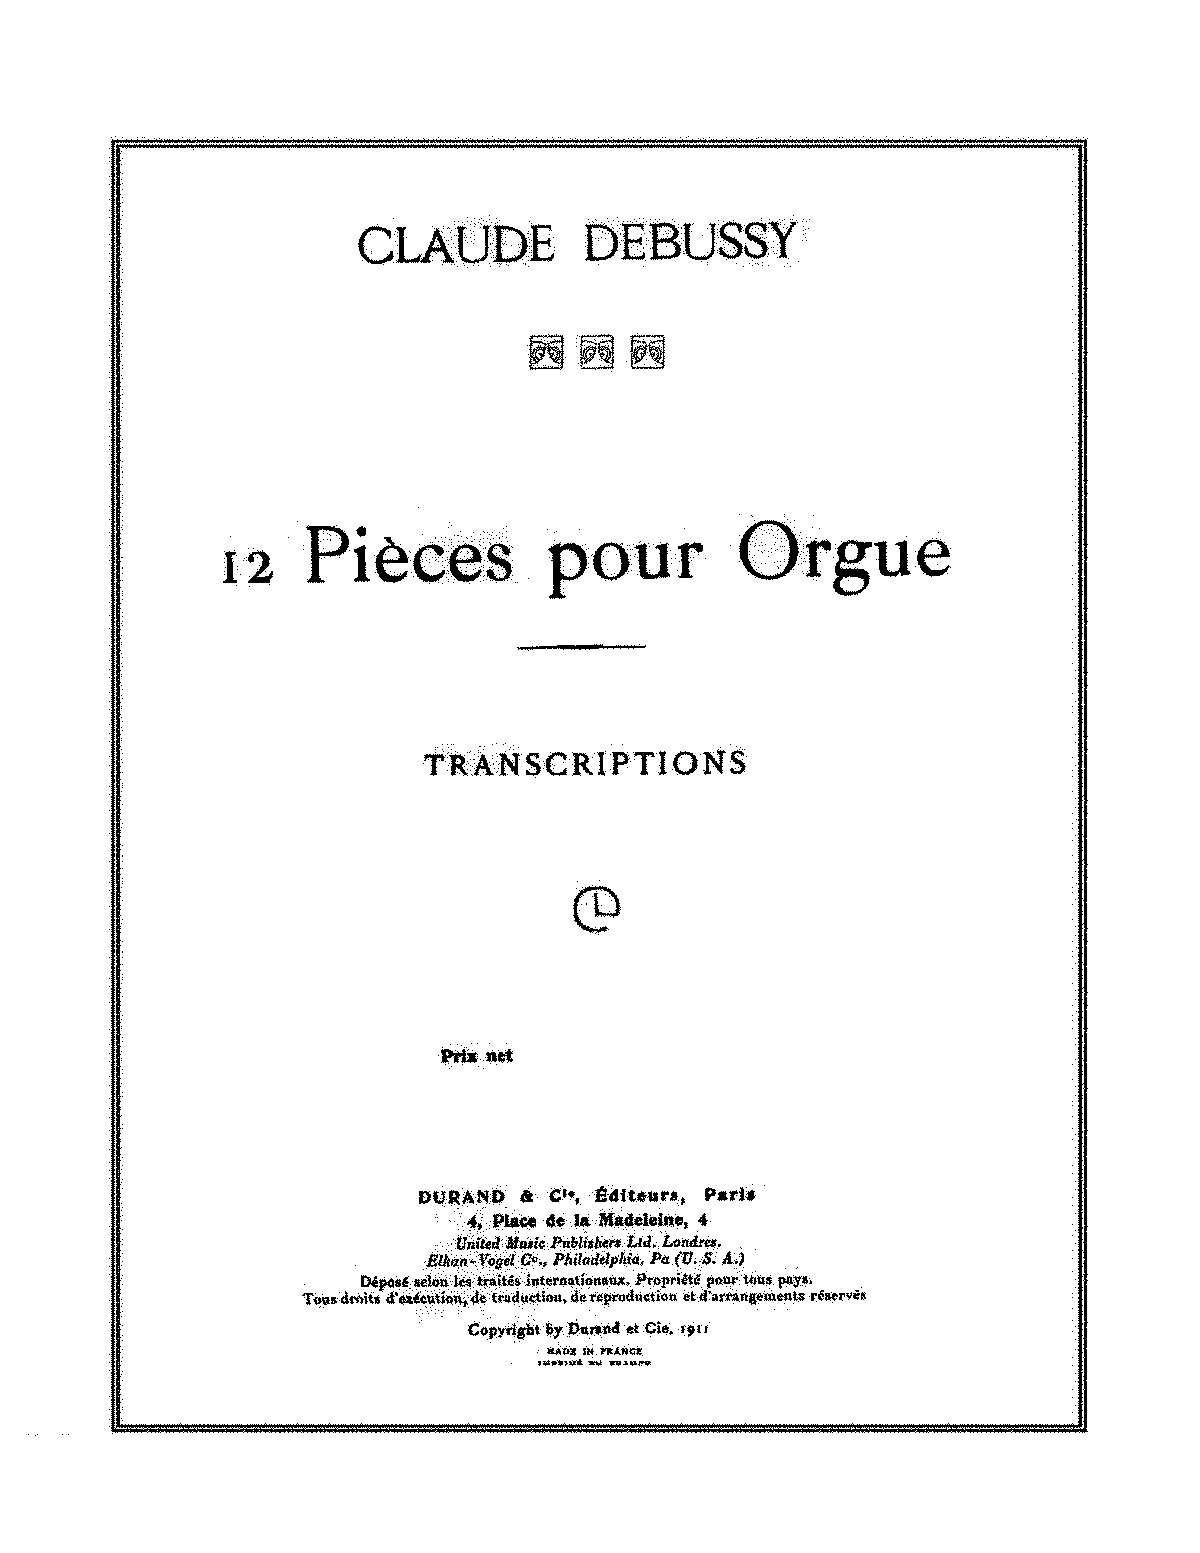 Debussy, Claude 12 pieces pour orgue(transcriptions).pdf